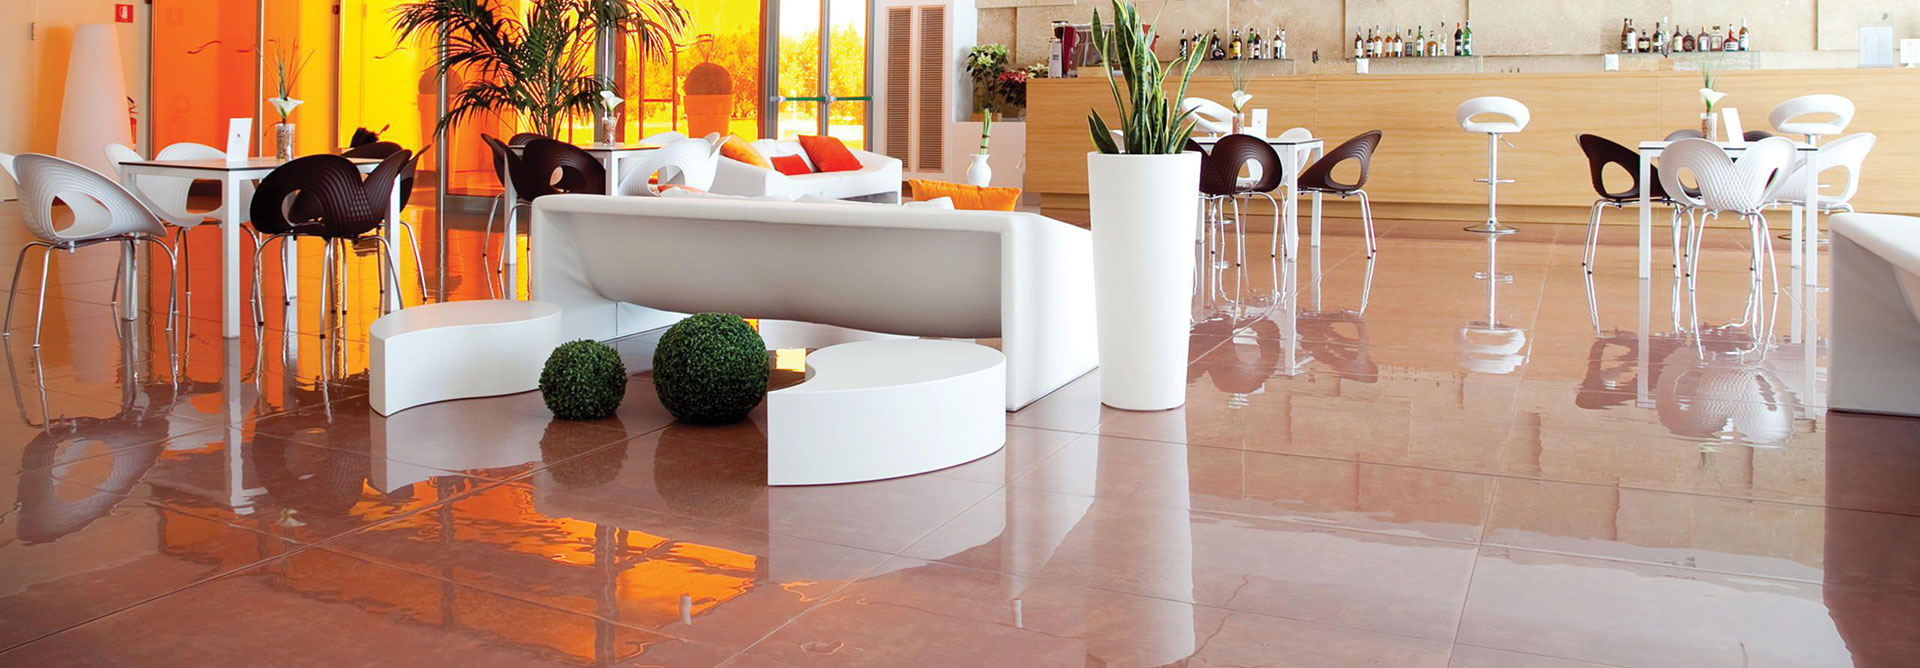 FMG Active: ecoactive antipollutant hightech ceramic floors ...